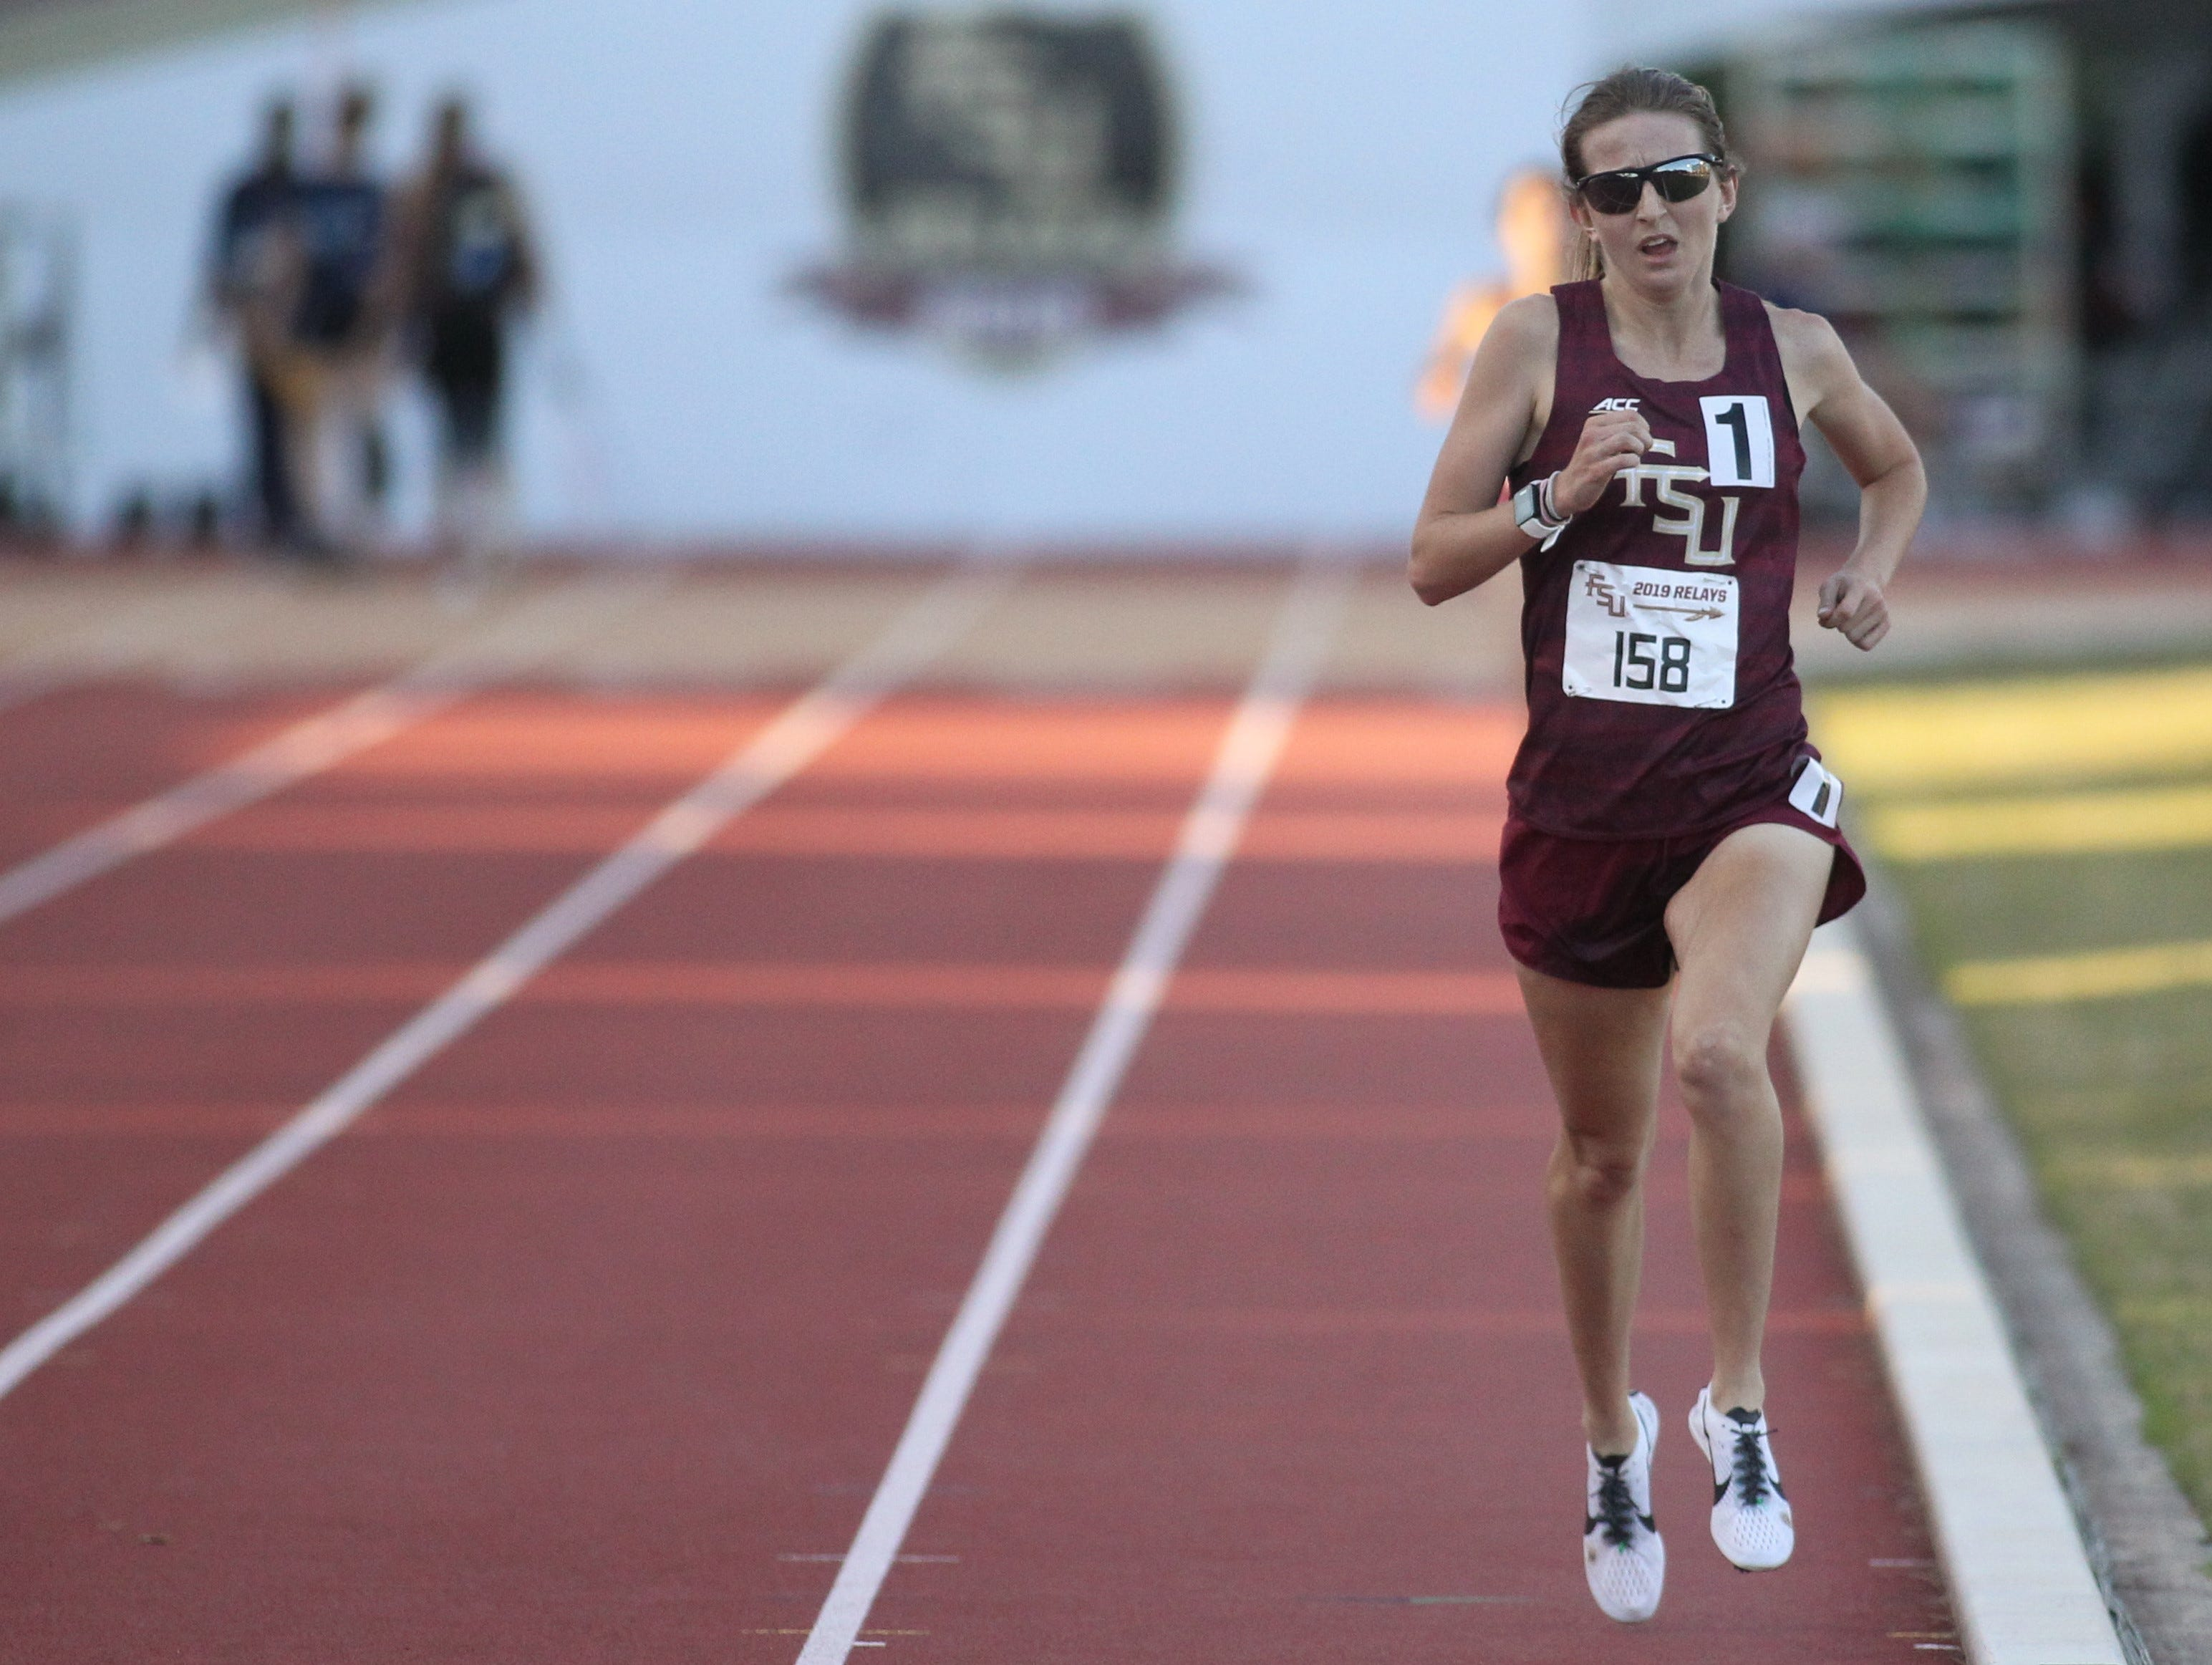 Florida State sophomore Jodie Judd races to a win in the 5000-meter run during Friday's college portion of the FSU Relays at Mike Long Track on March 22, 2019.